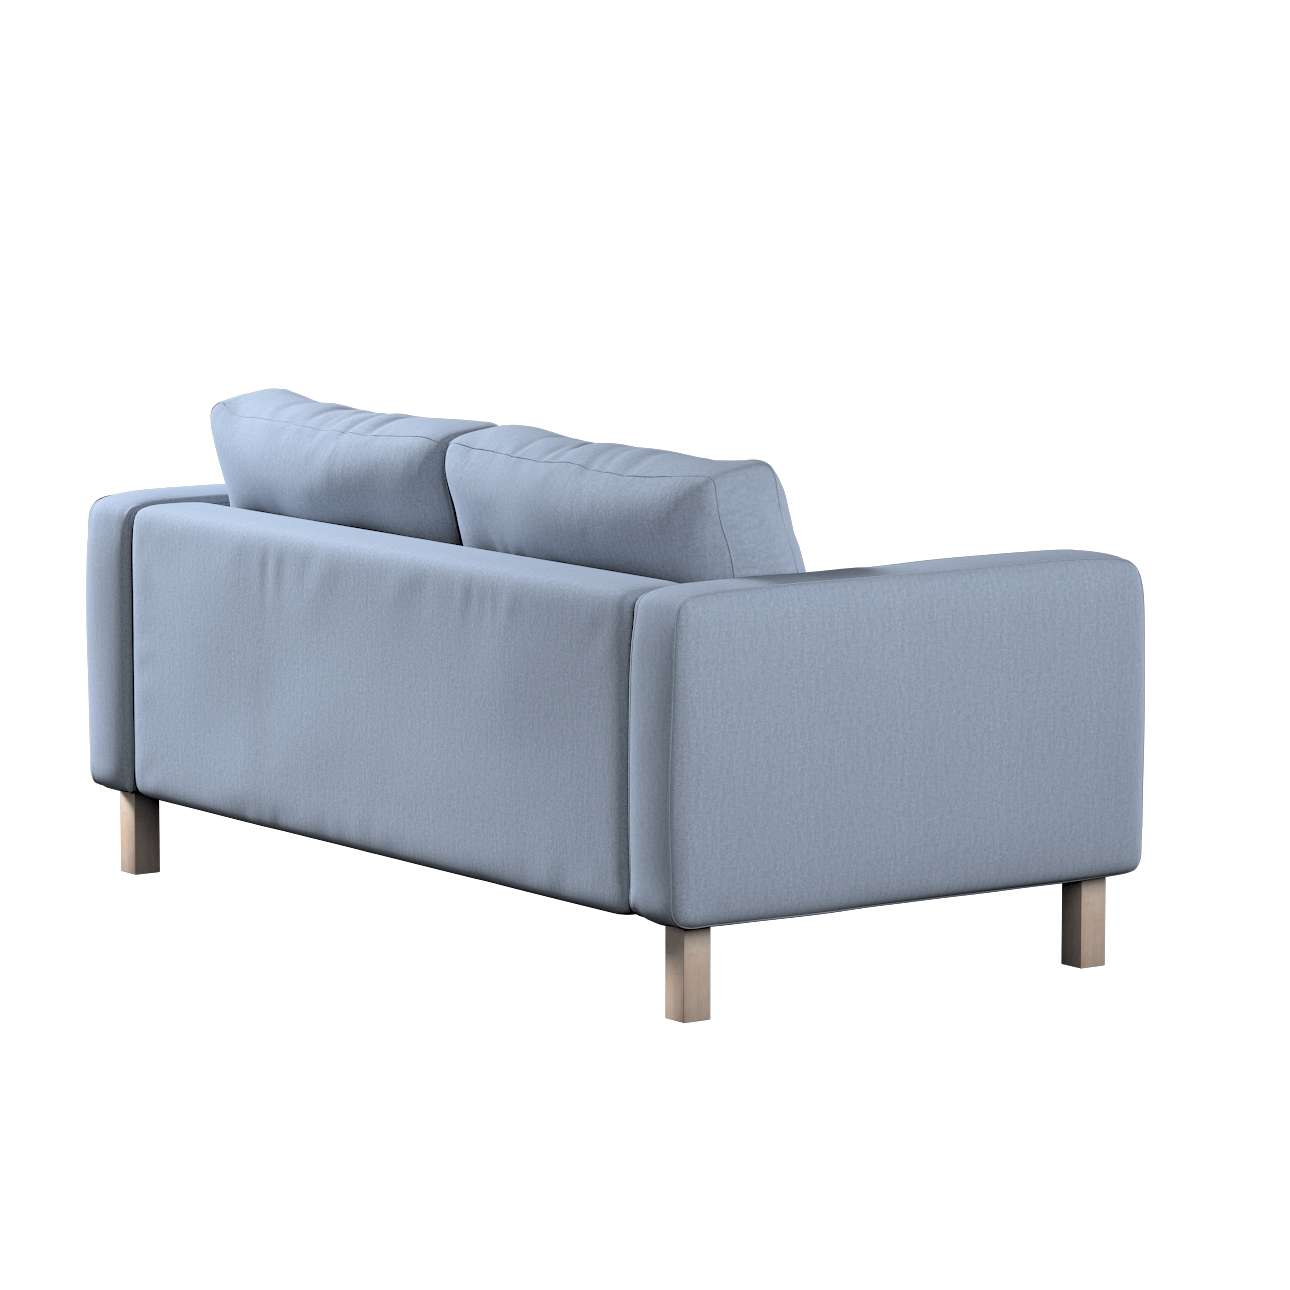 Karlstad 2-seater sofa cover in collection Chenille, fabric: 702-13